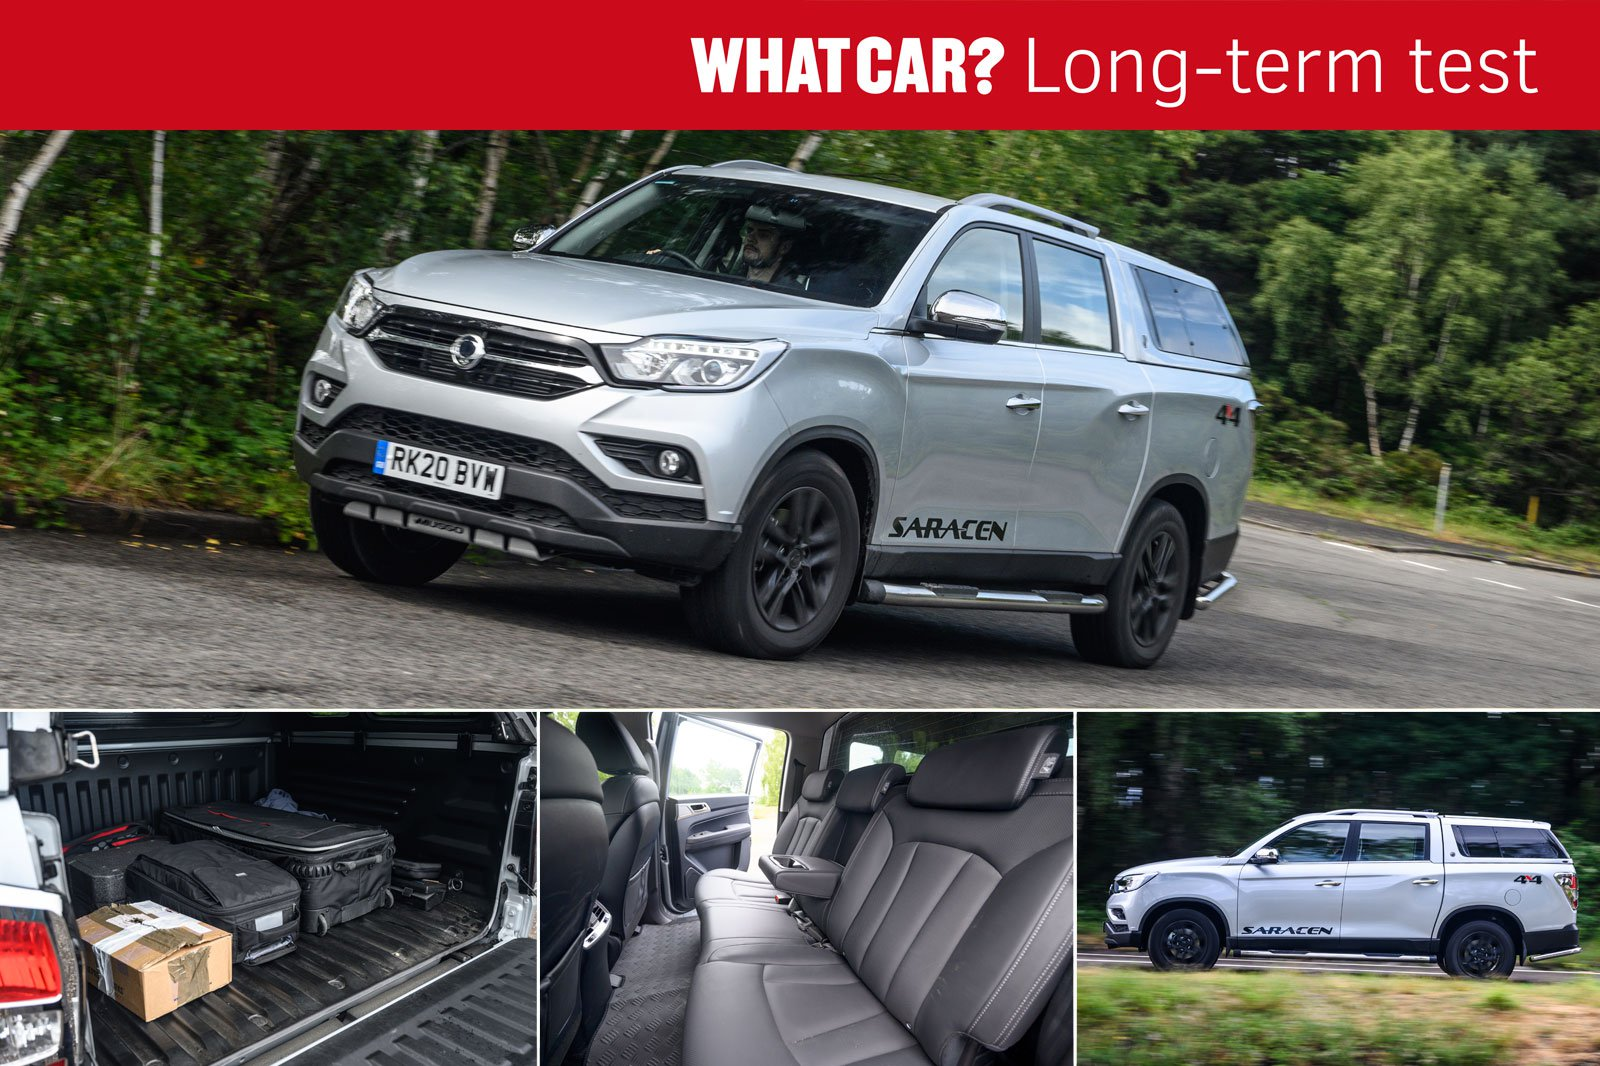 Ssangyong Musso compilation image